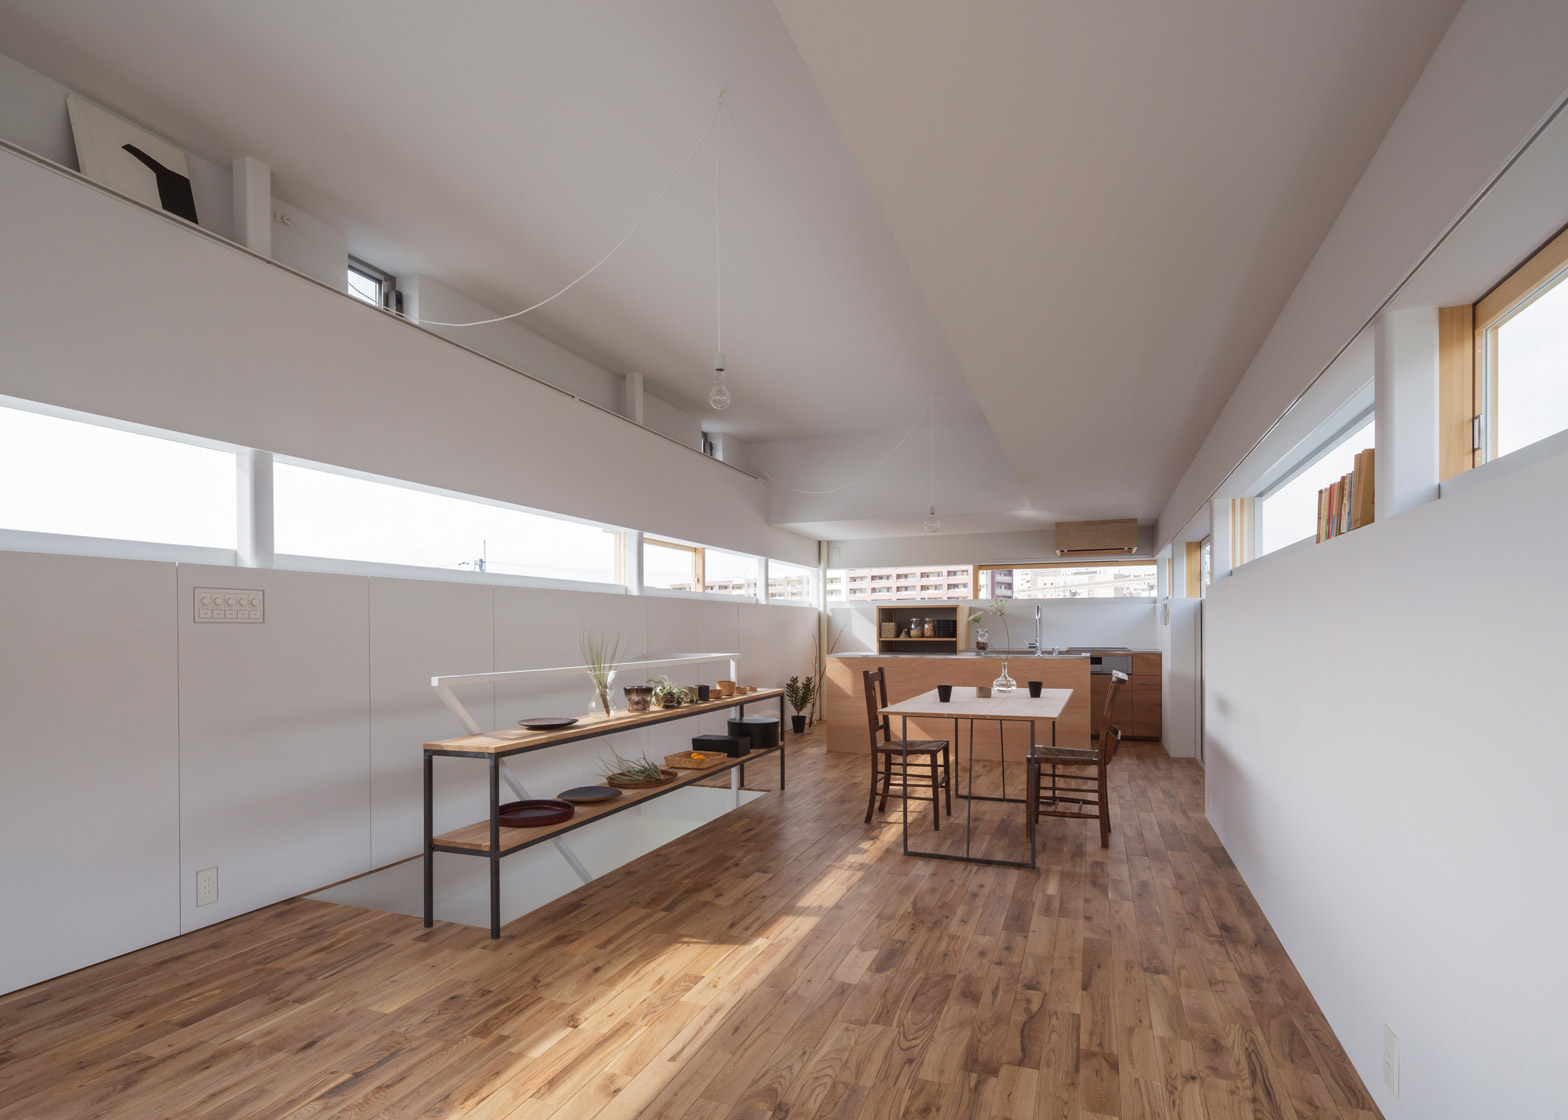 House in Toyonaka by Tato Architects